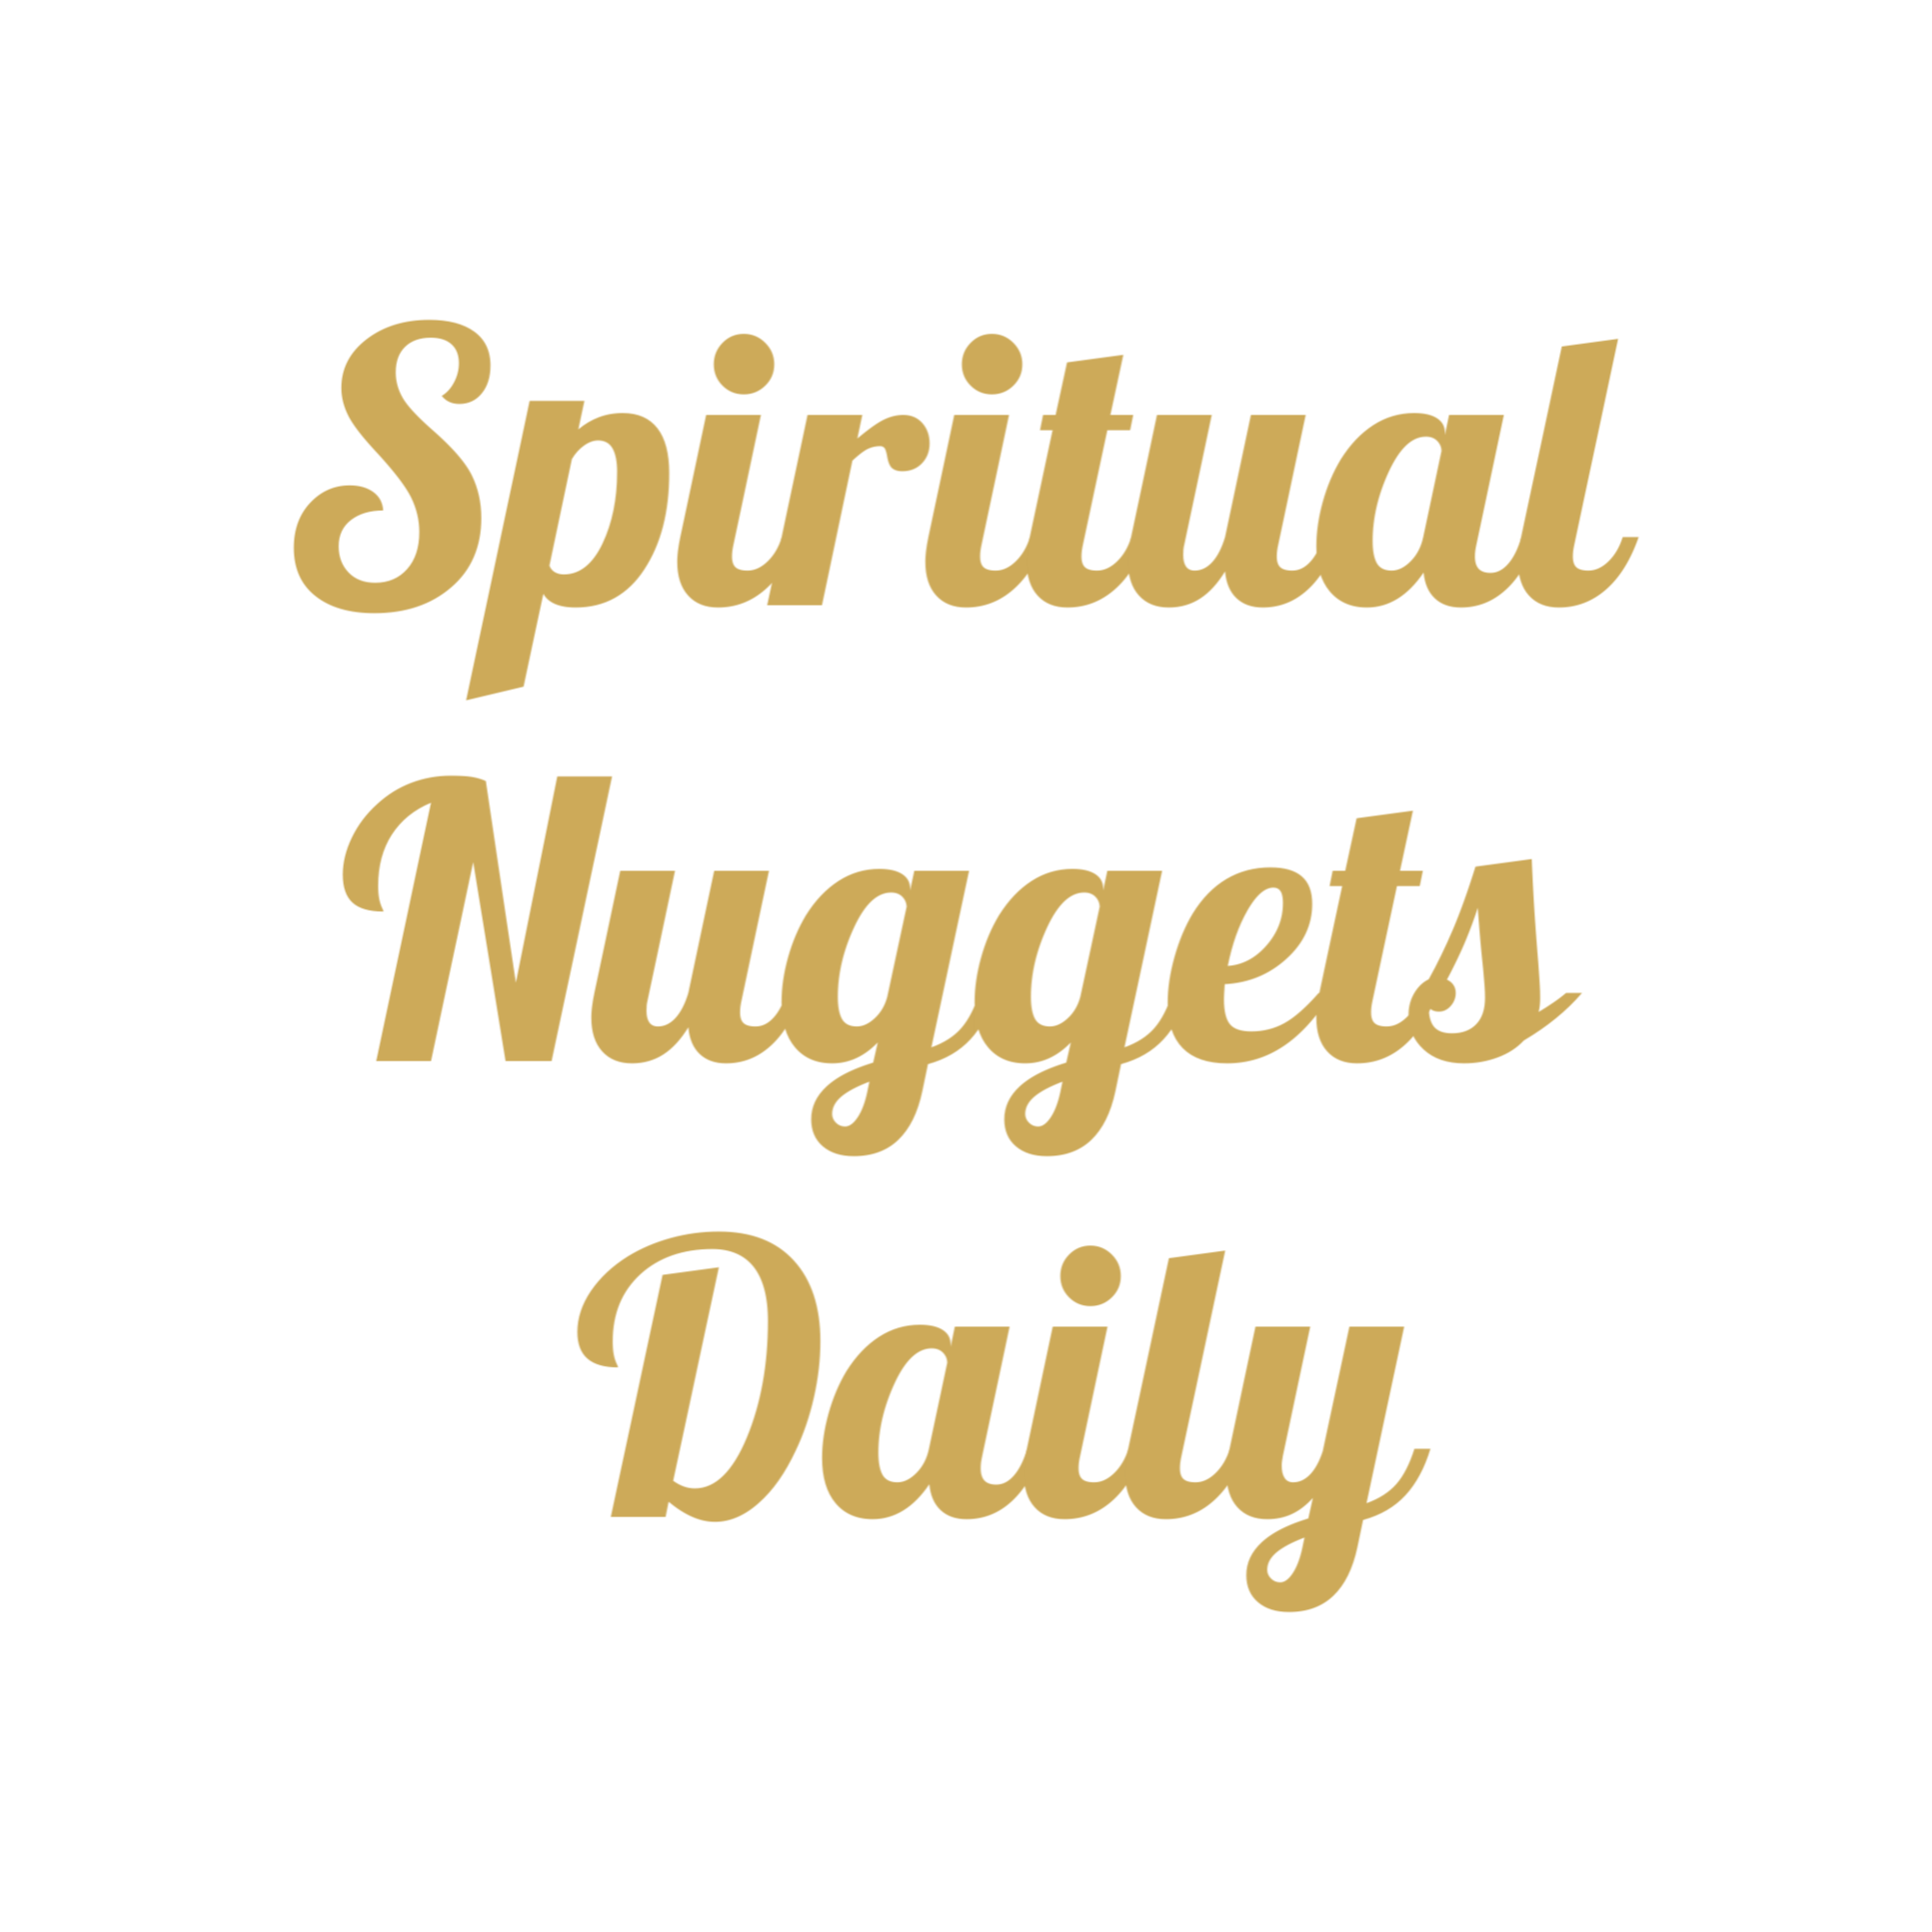 Spiritual Nuggets Daily